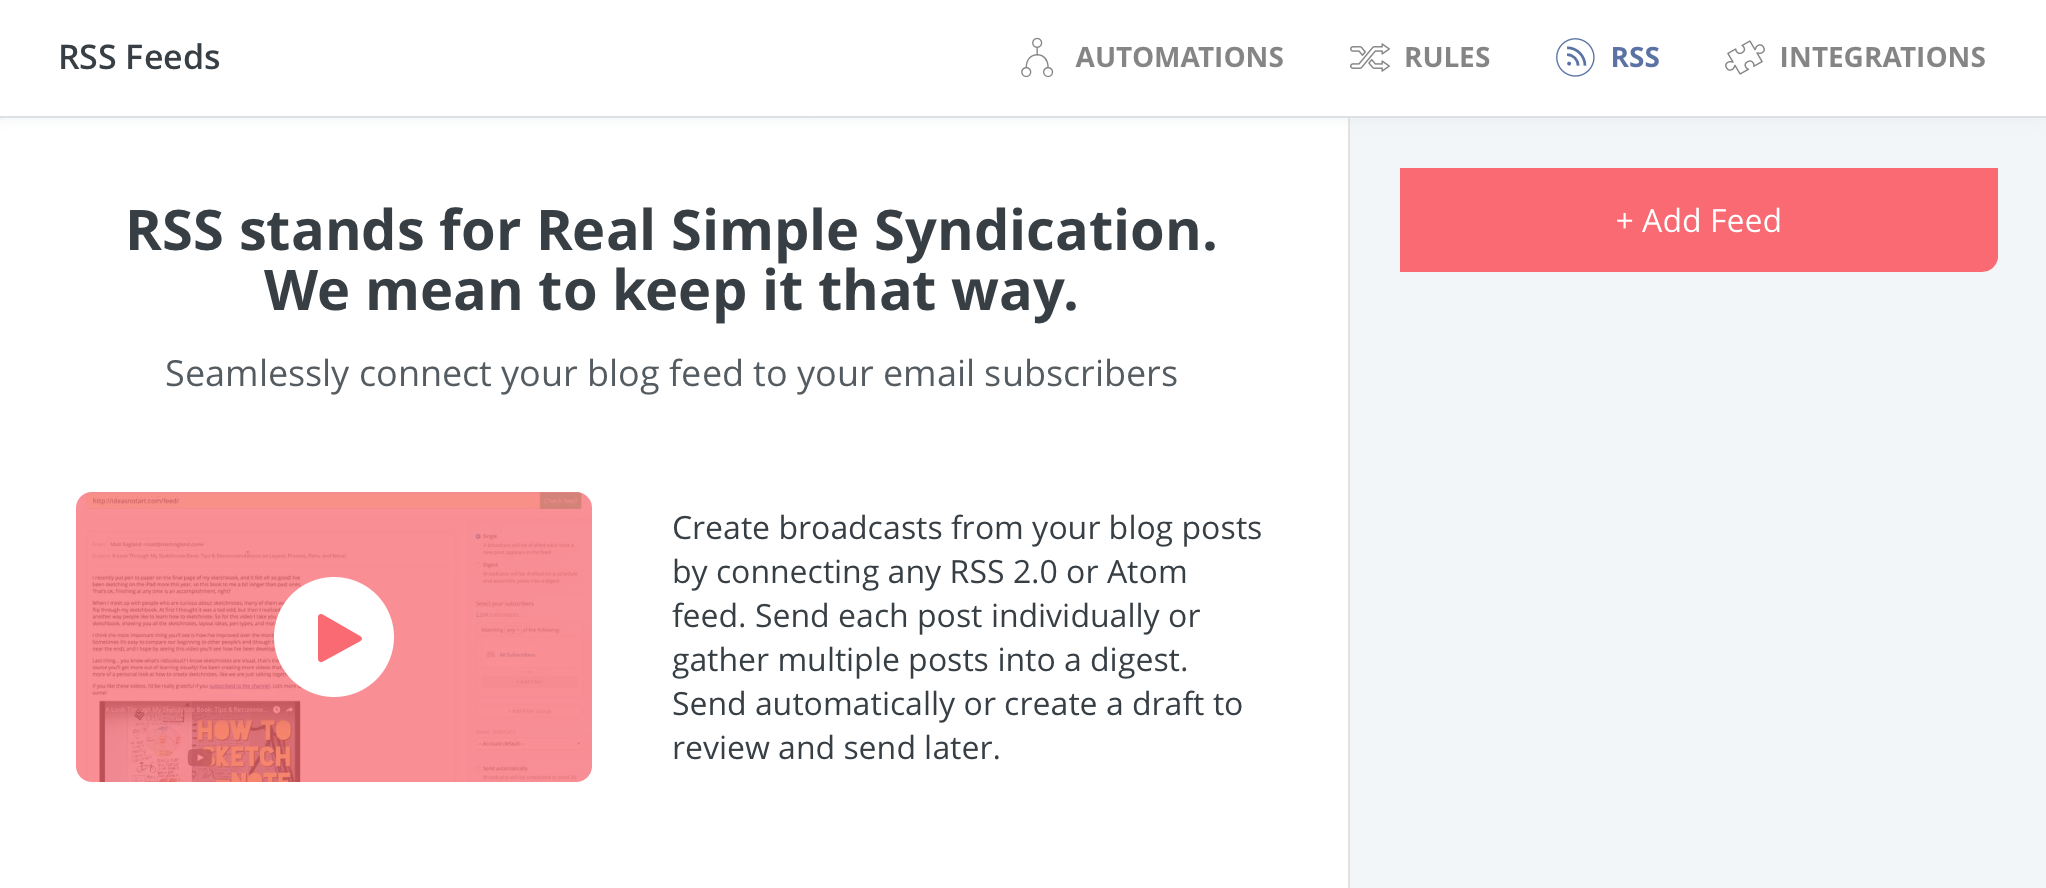 How to set up an RSS feed - ConvertKit Knowledge Base